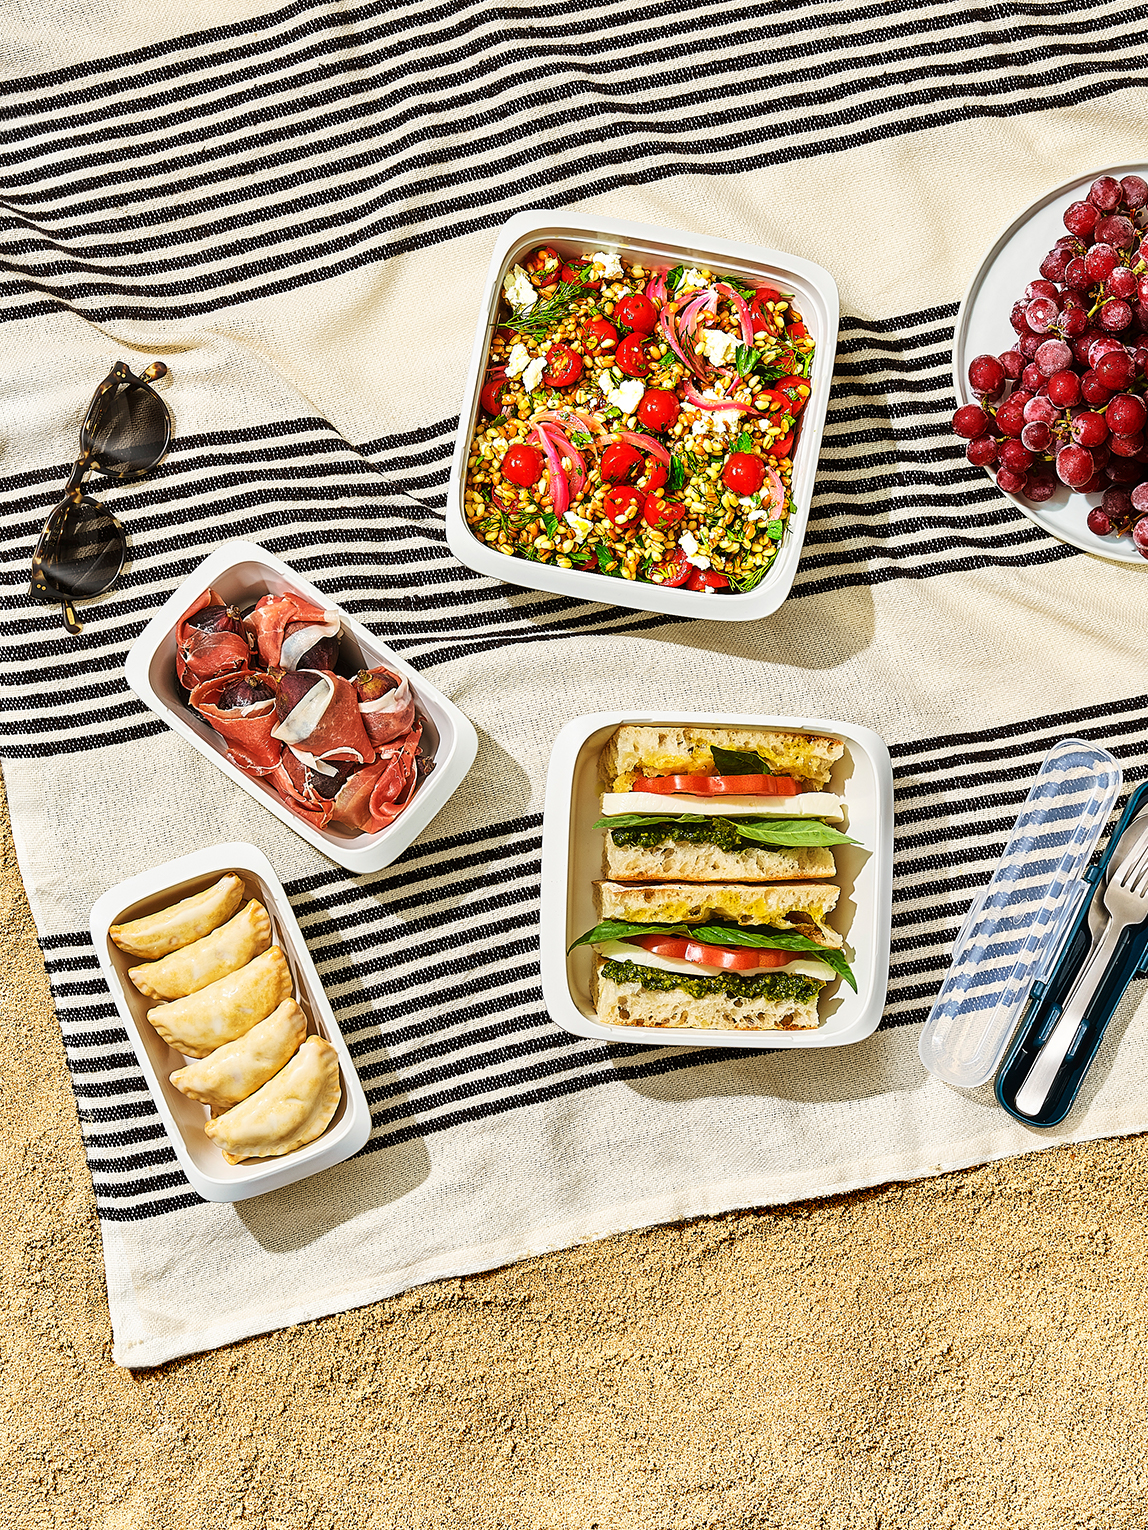 Lunch at the Beach? Pack These Easy Picnic Foods